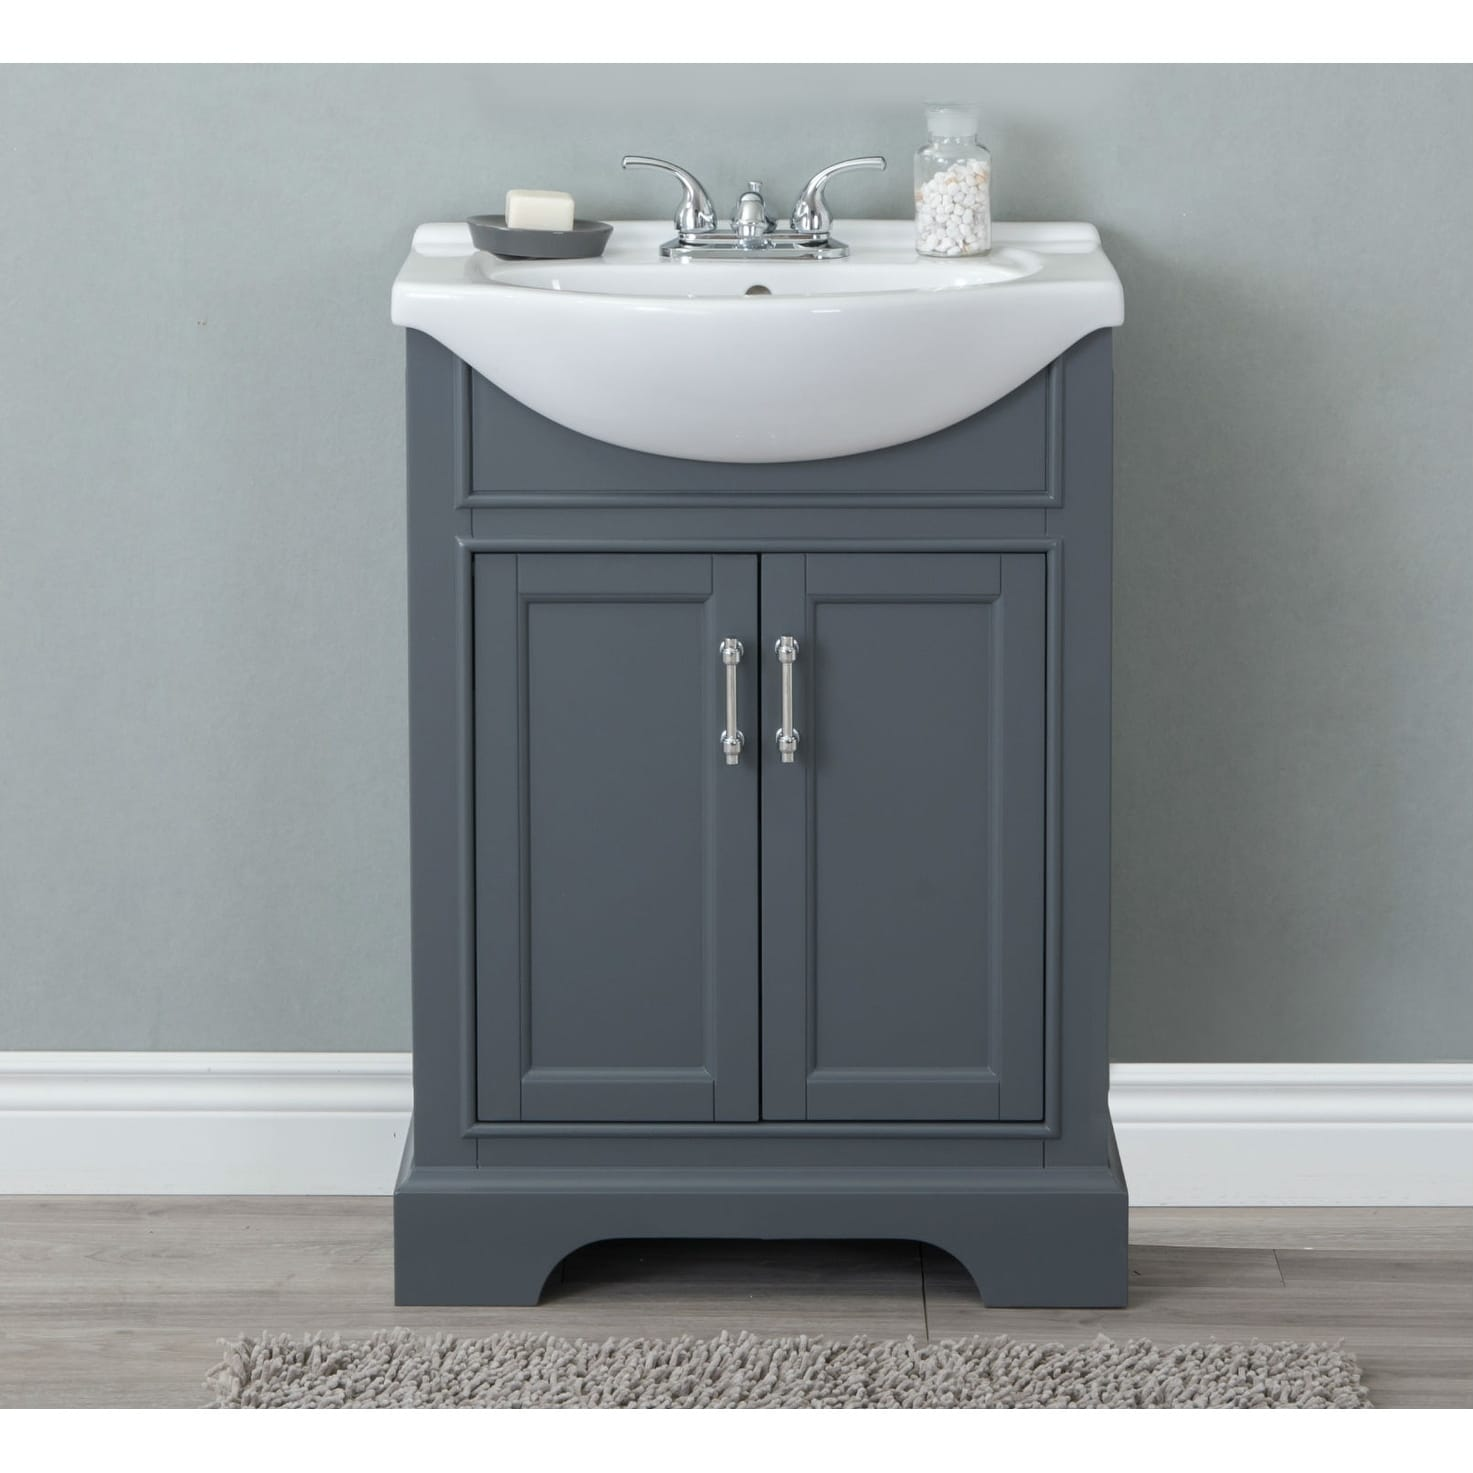 Dark Bathroom Vanity 24 In Bathroom Vanity In Dark Gray With Ceramic Top